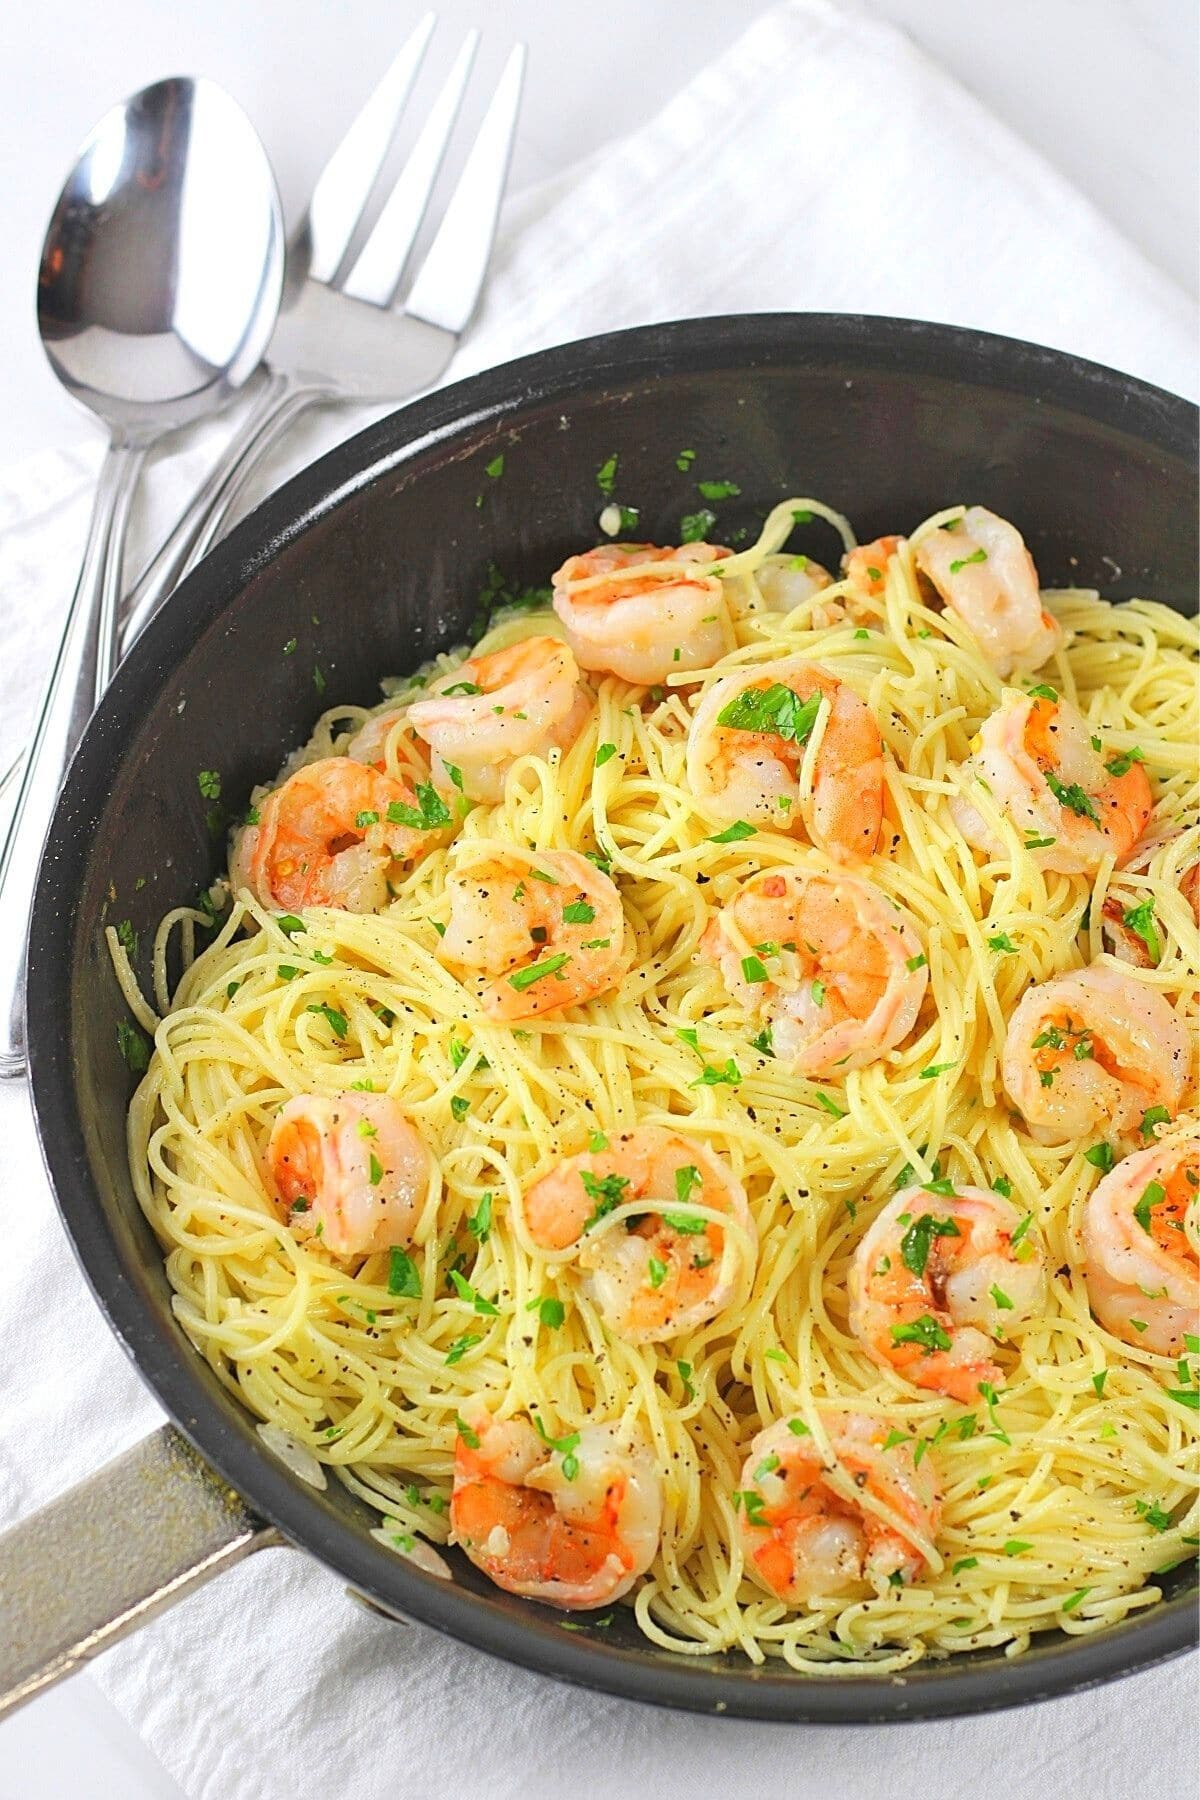 shrimp scampi with angel hair pasta in a pan with a serving spoon and fork on the side